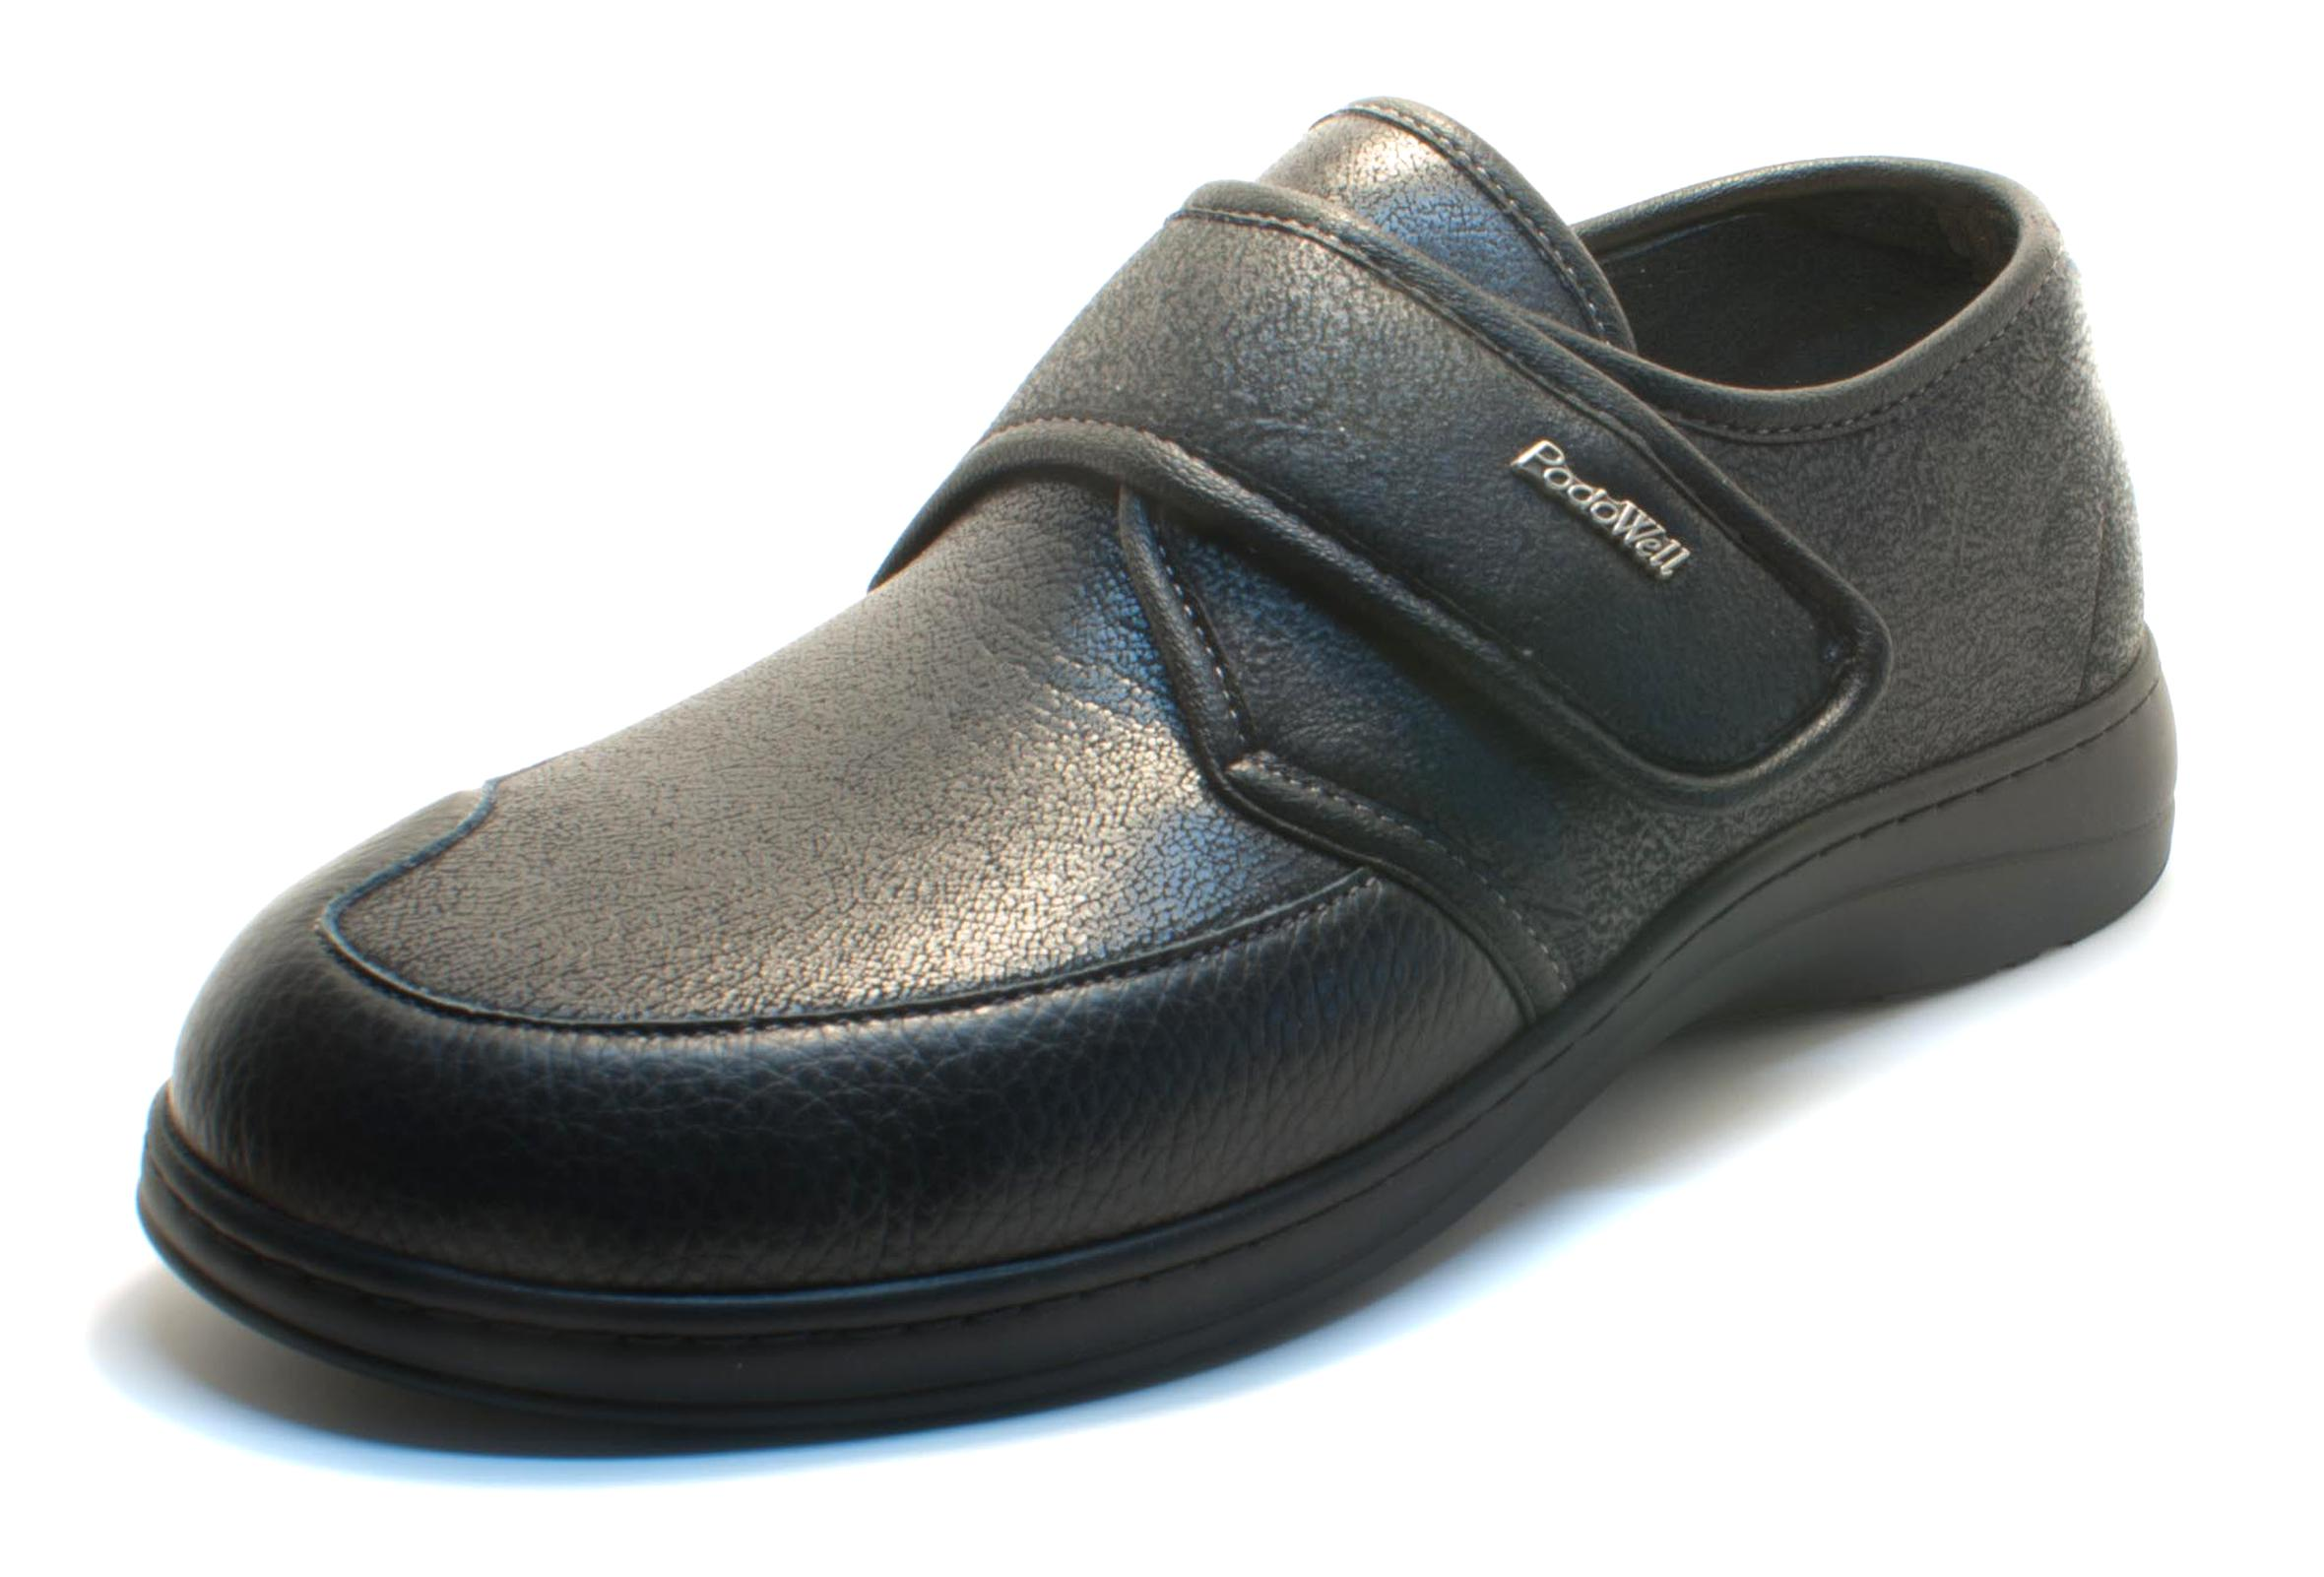 Chaussure Pied Large d'occasion